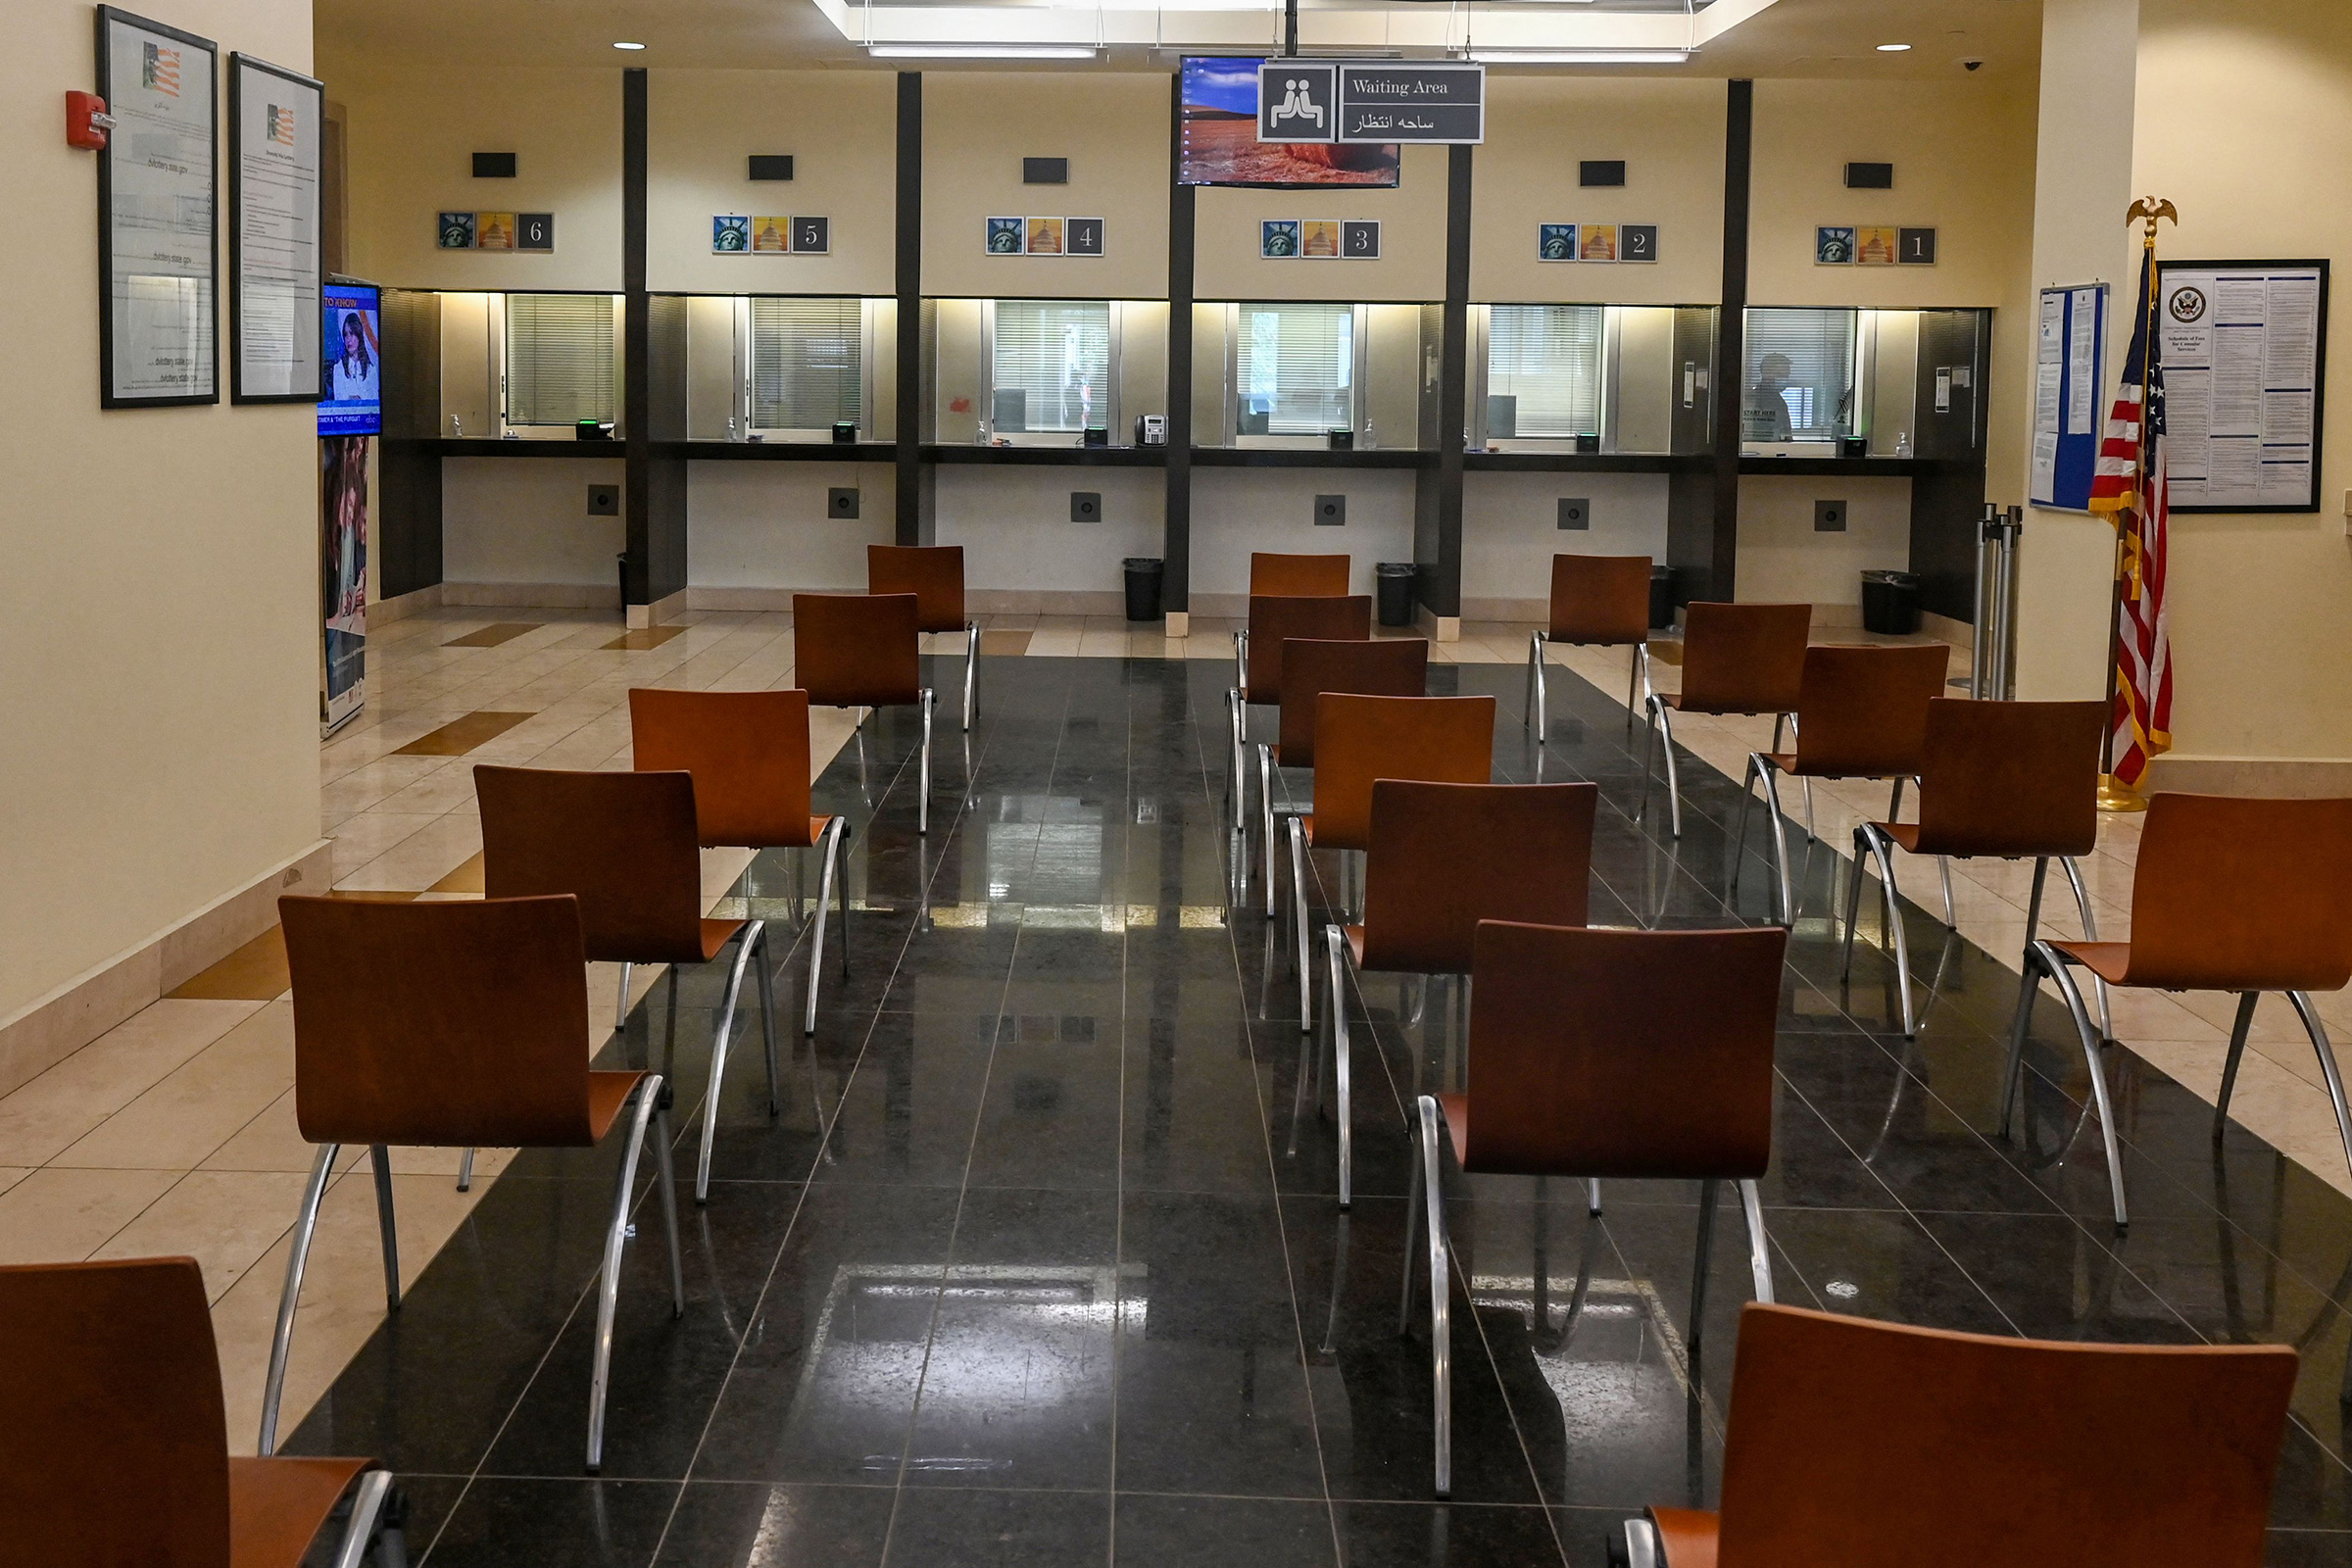 A deserted view of the consular section at the U.S. embassy in Kabul, Afghanistan on July 30, 2021.